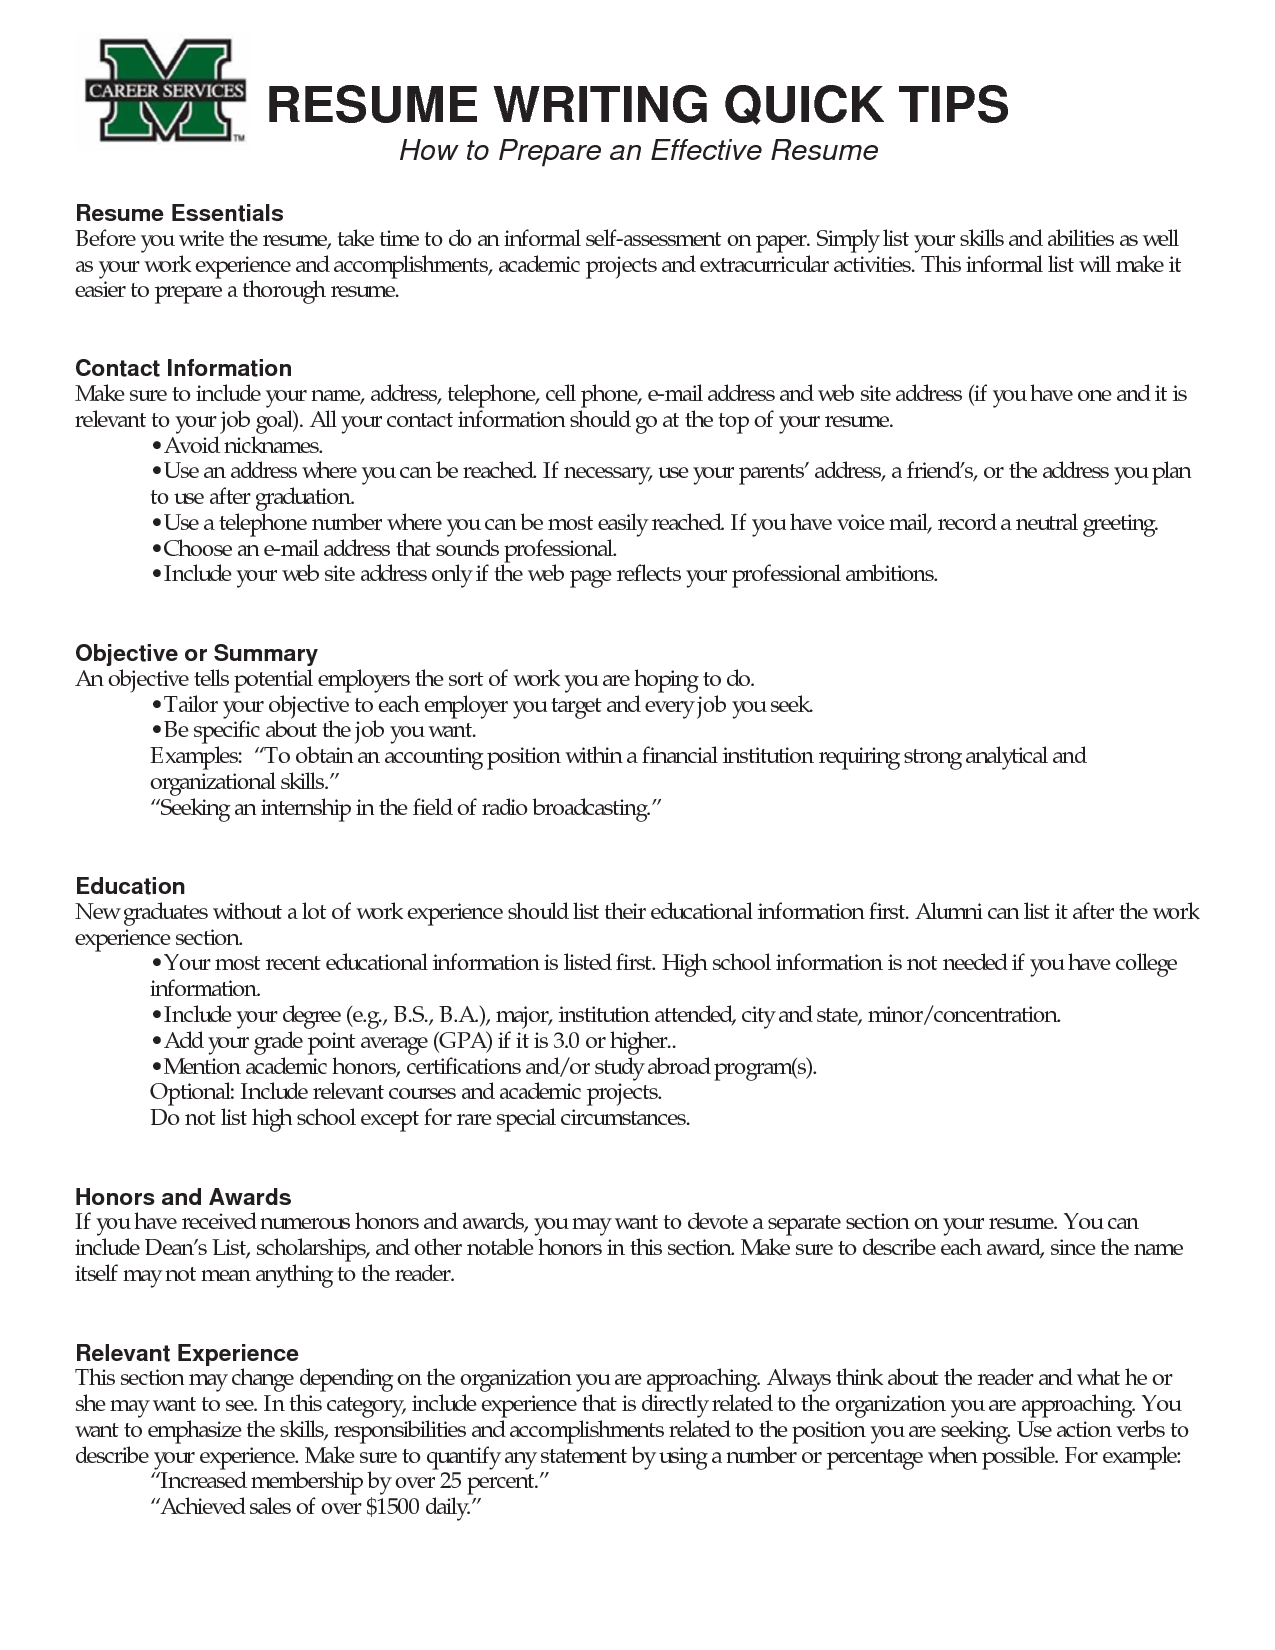 Tips Effective Resume Writing LoseyourloveWriting A Resume Cover Letter  Examples  Effective Resumes